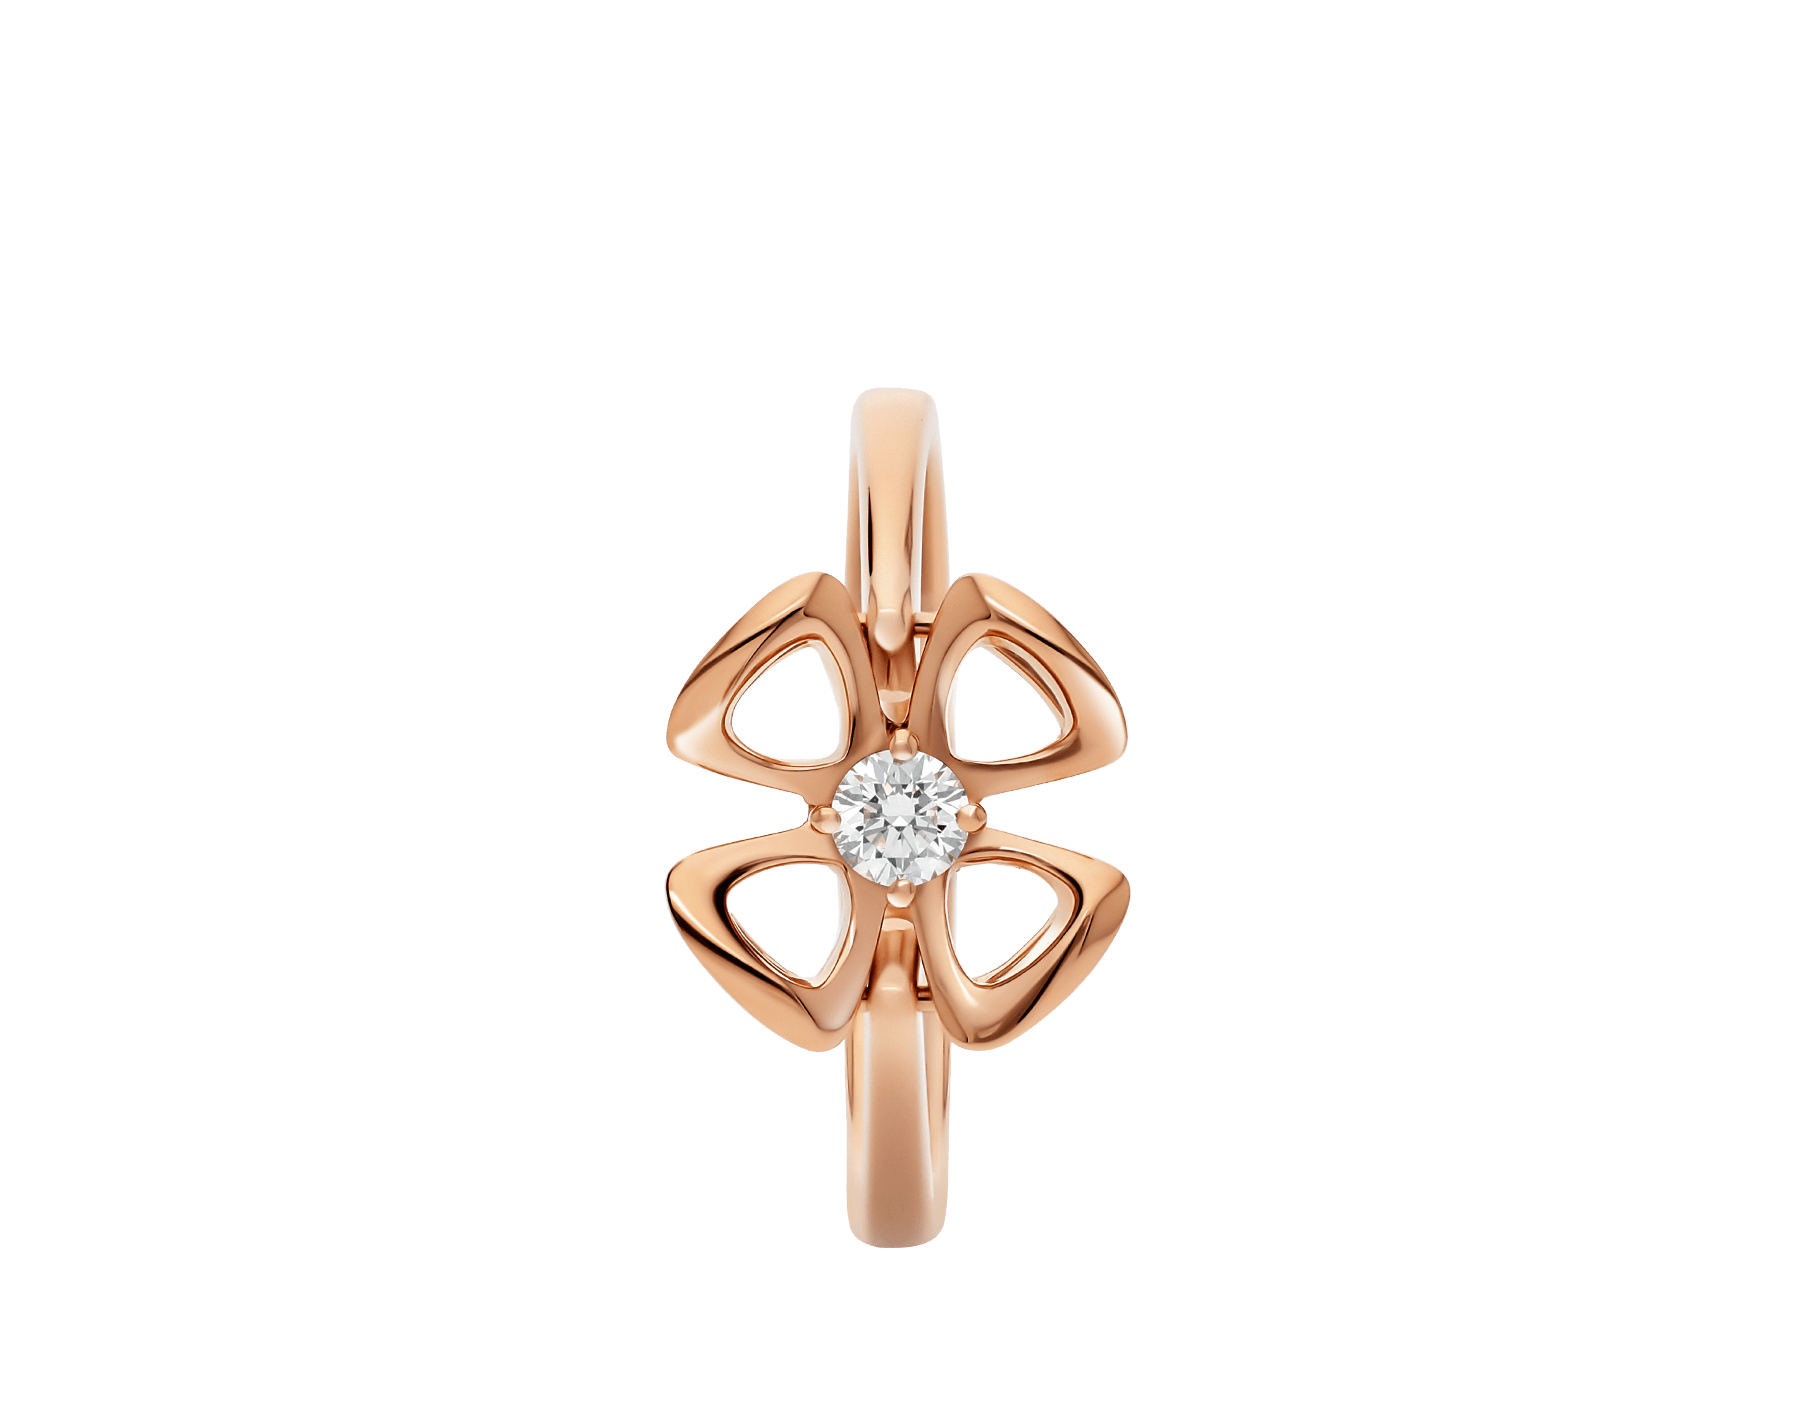 Fiorever 18 kt rose gold ring set with a central diamond. AN858438 image 2